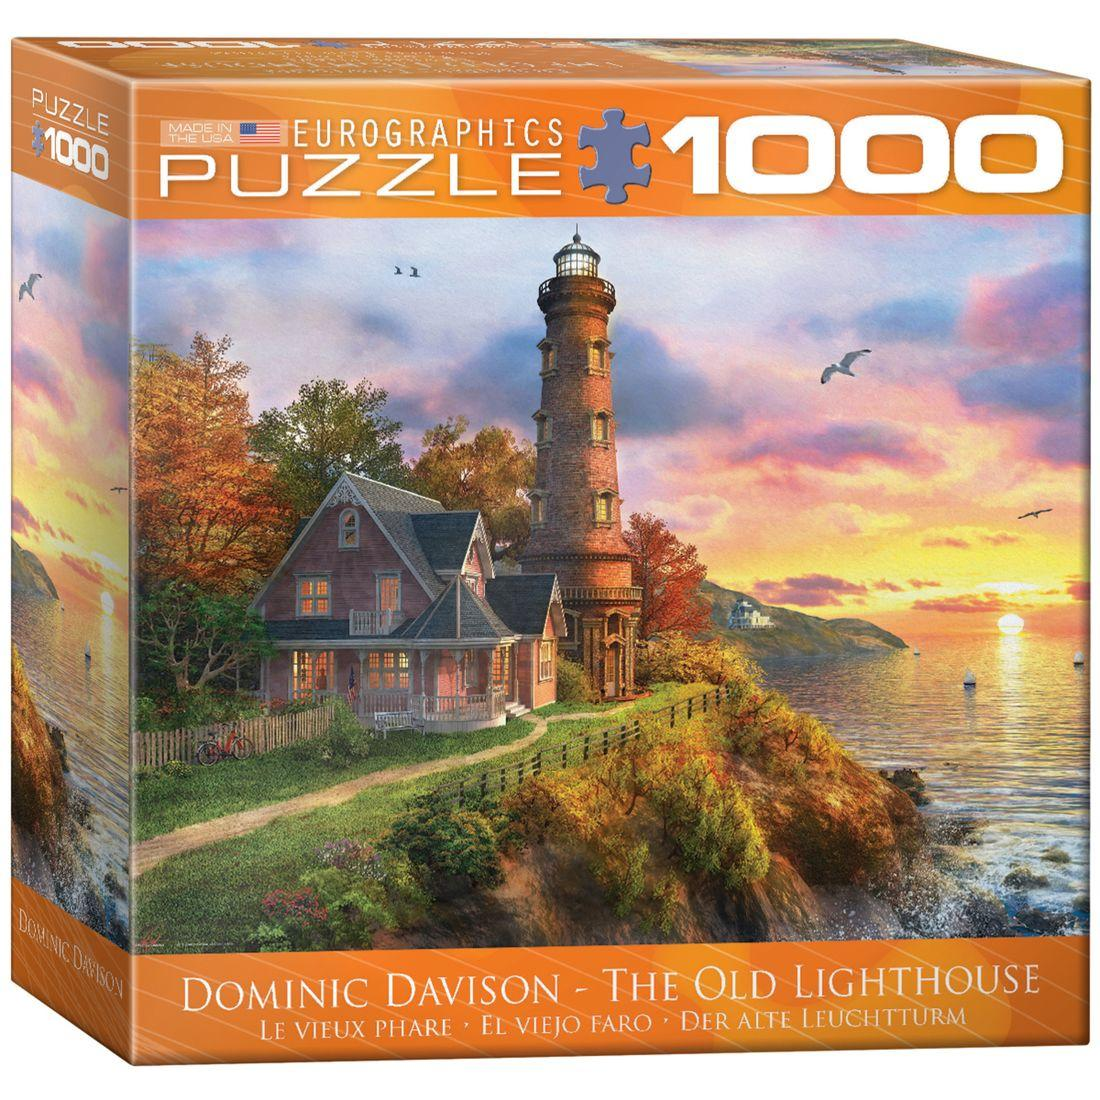 The Old Lighthouse by Dominic Davison 1000 Piece Puzzle J...